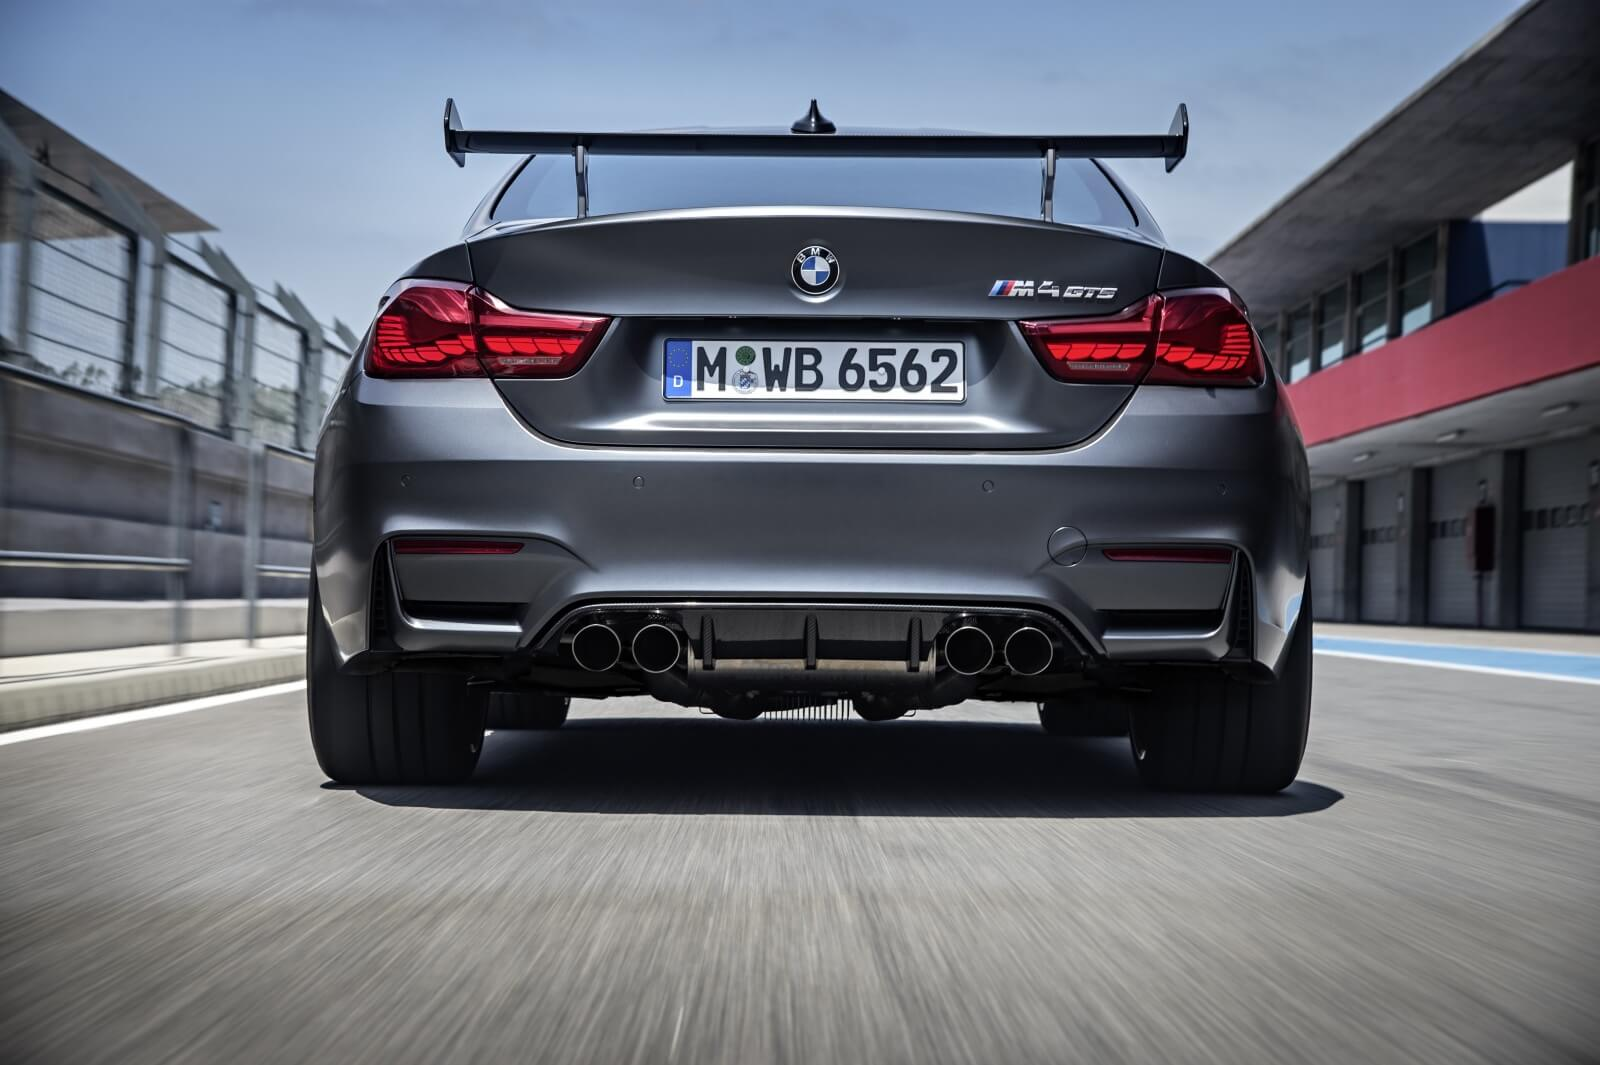 bmw-m4-gts-officially-unveiled-with-500-hp-and-a-728-nurburgring-lap-time-photo-gallery_1